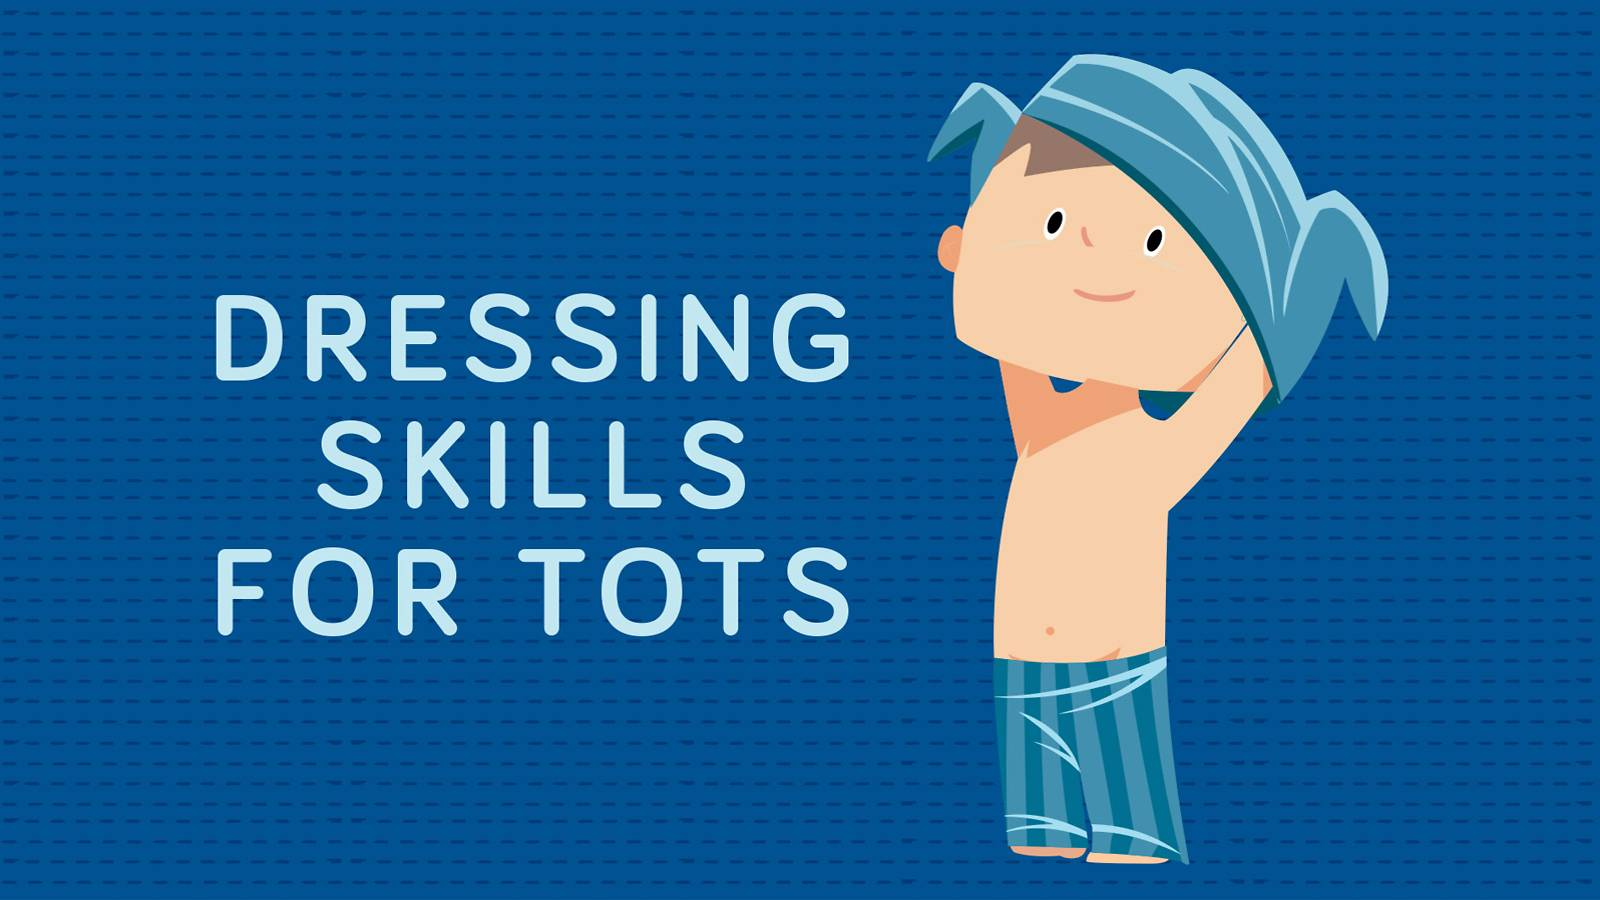 Tots--A-by-age-guide-to-your-tot's-self-dressing-skills-main